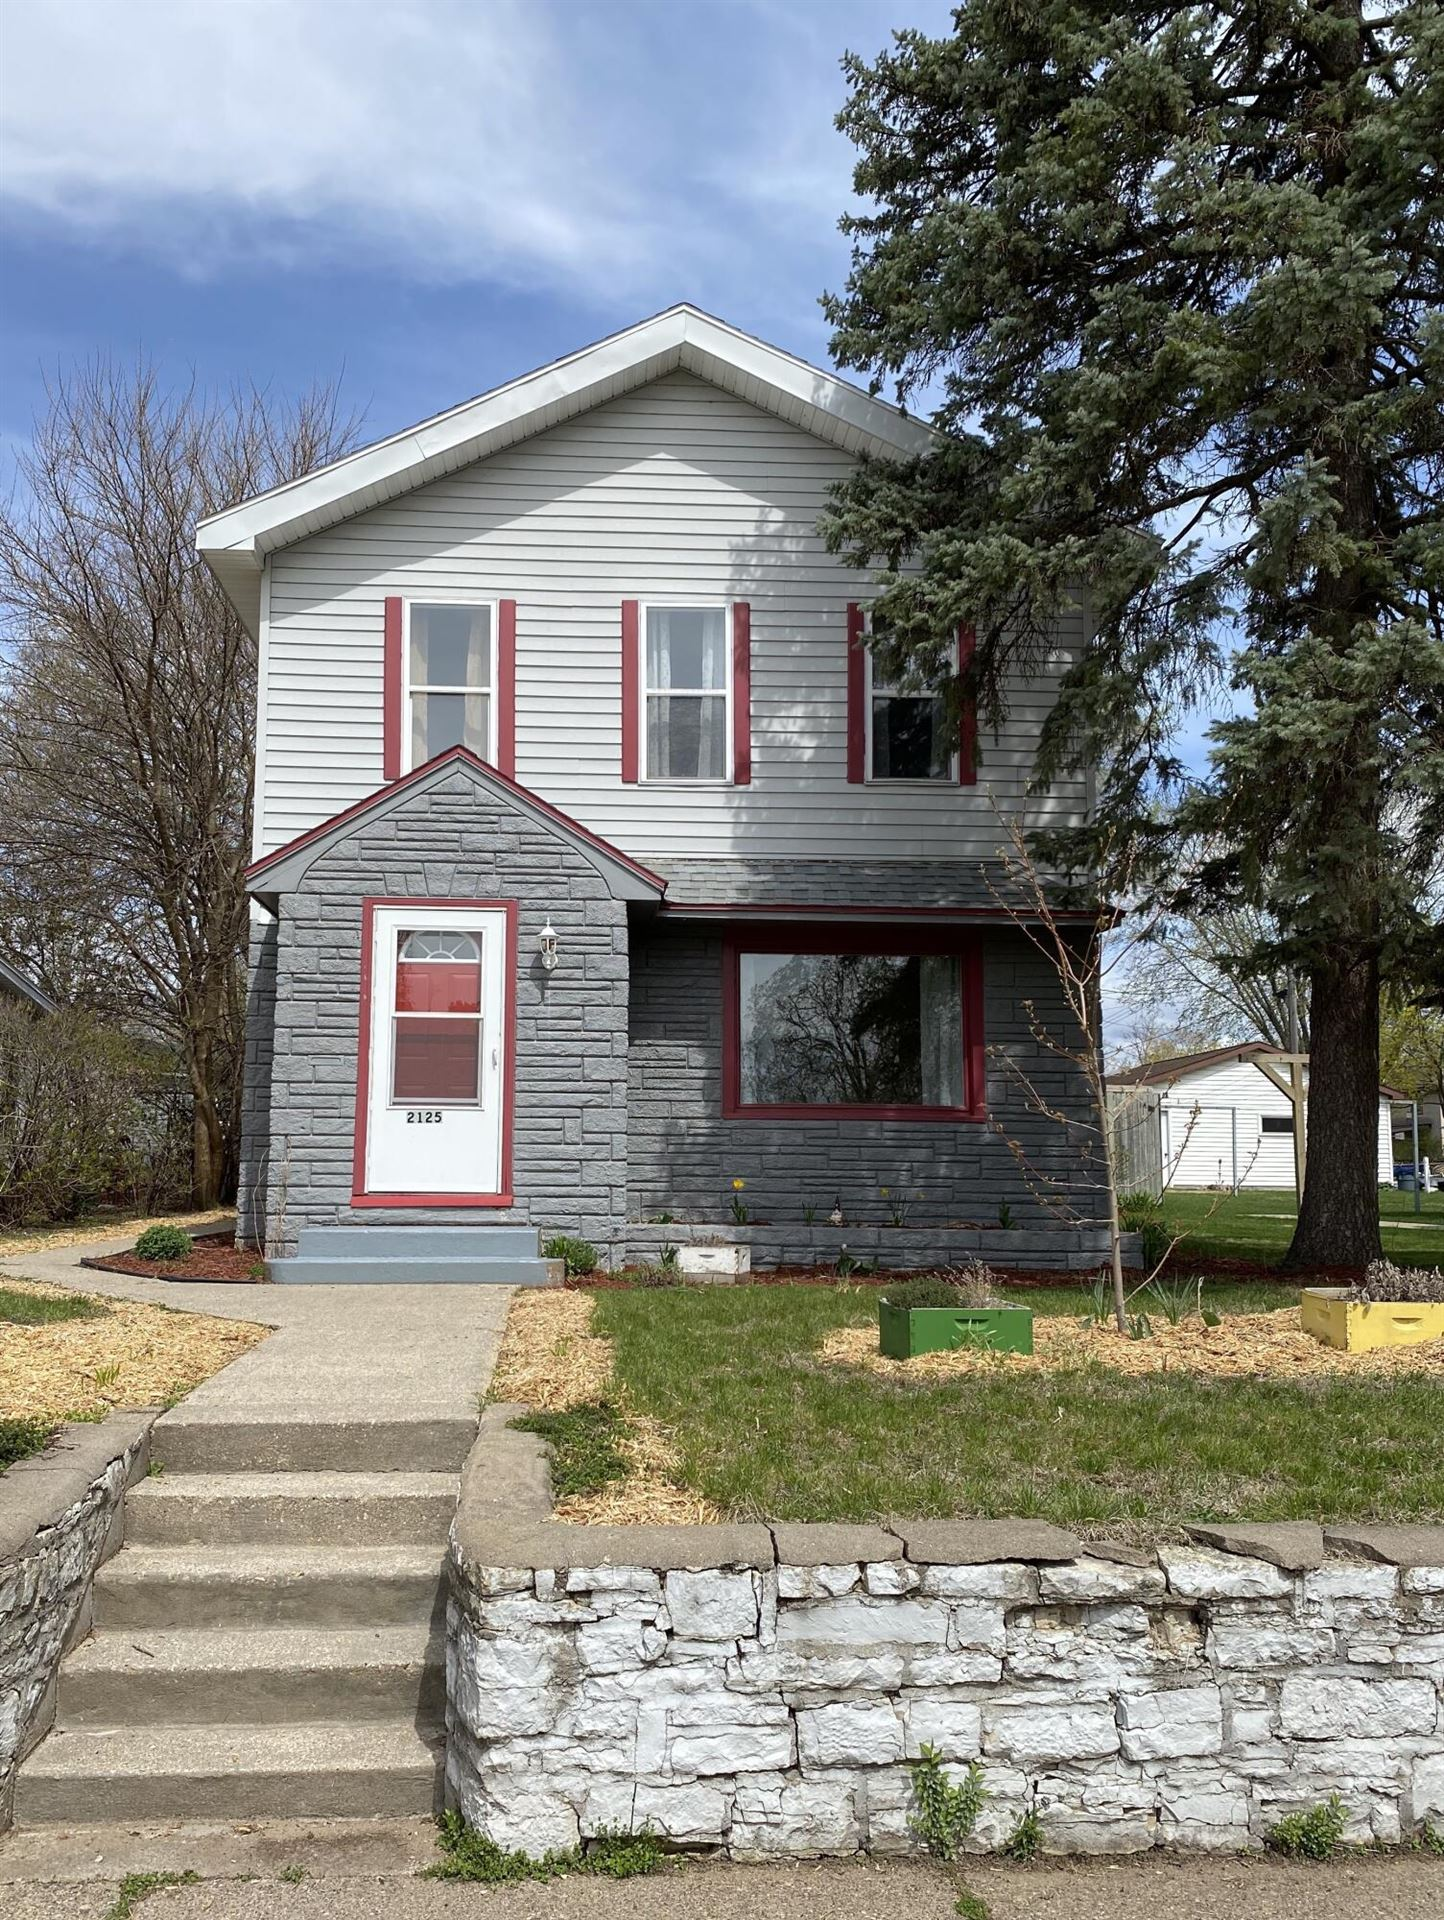 2125 Madison, La Crosse, WI 54601 - MLS#: 1735636